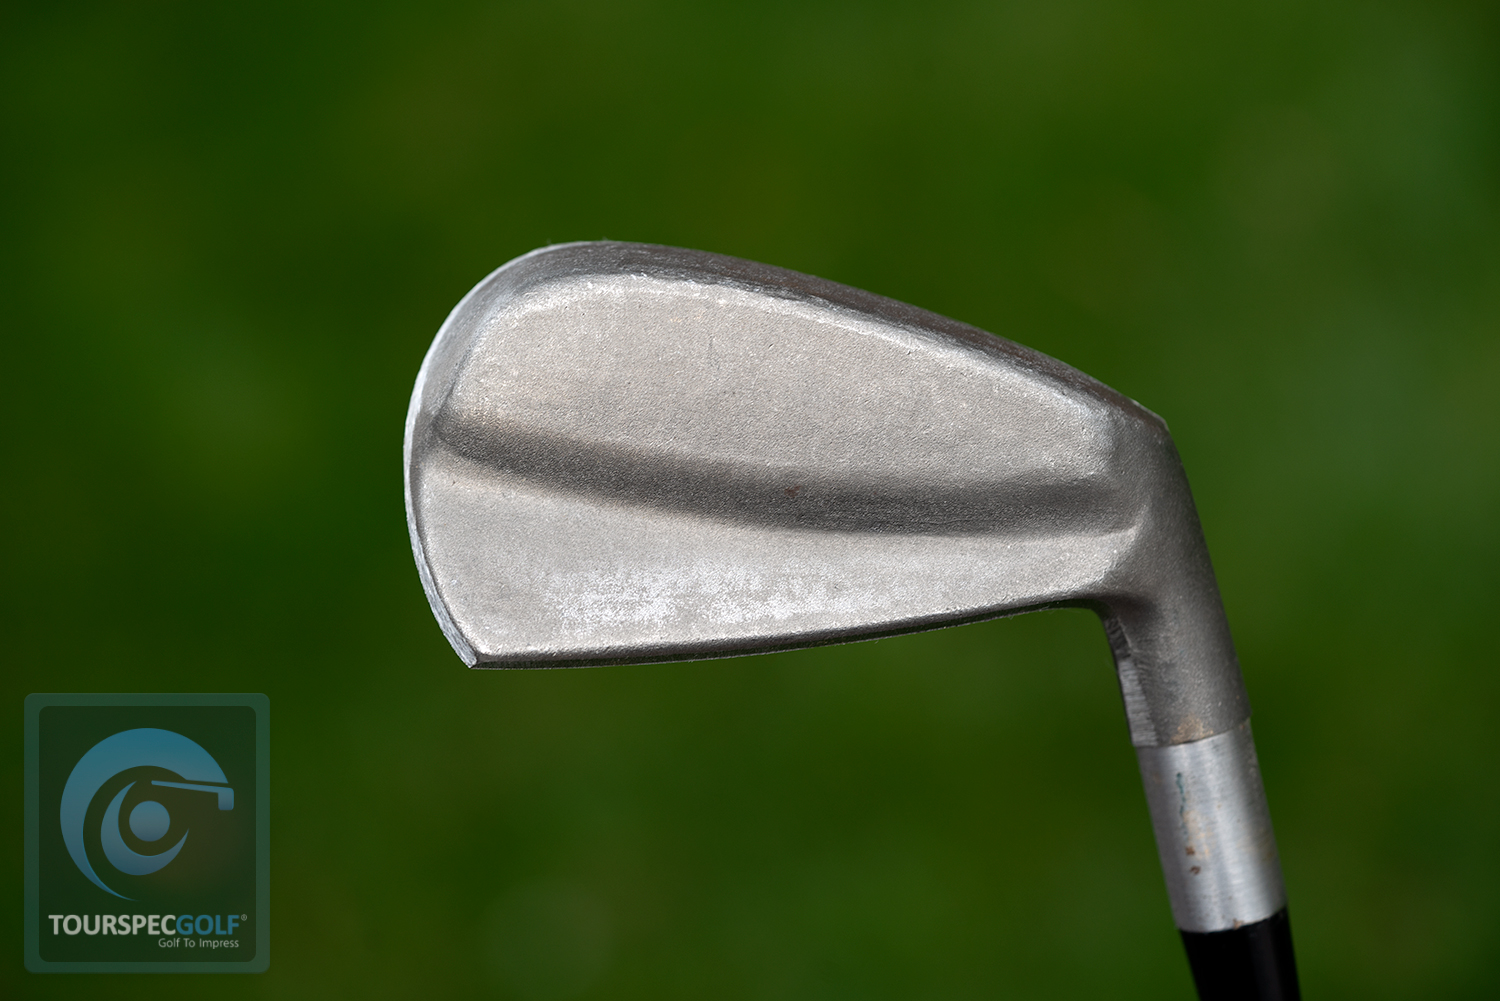 Raw-Forged-Golf-Club-Blanks3.jpg